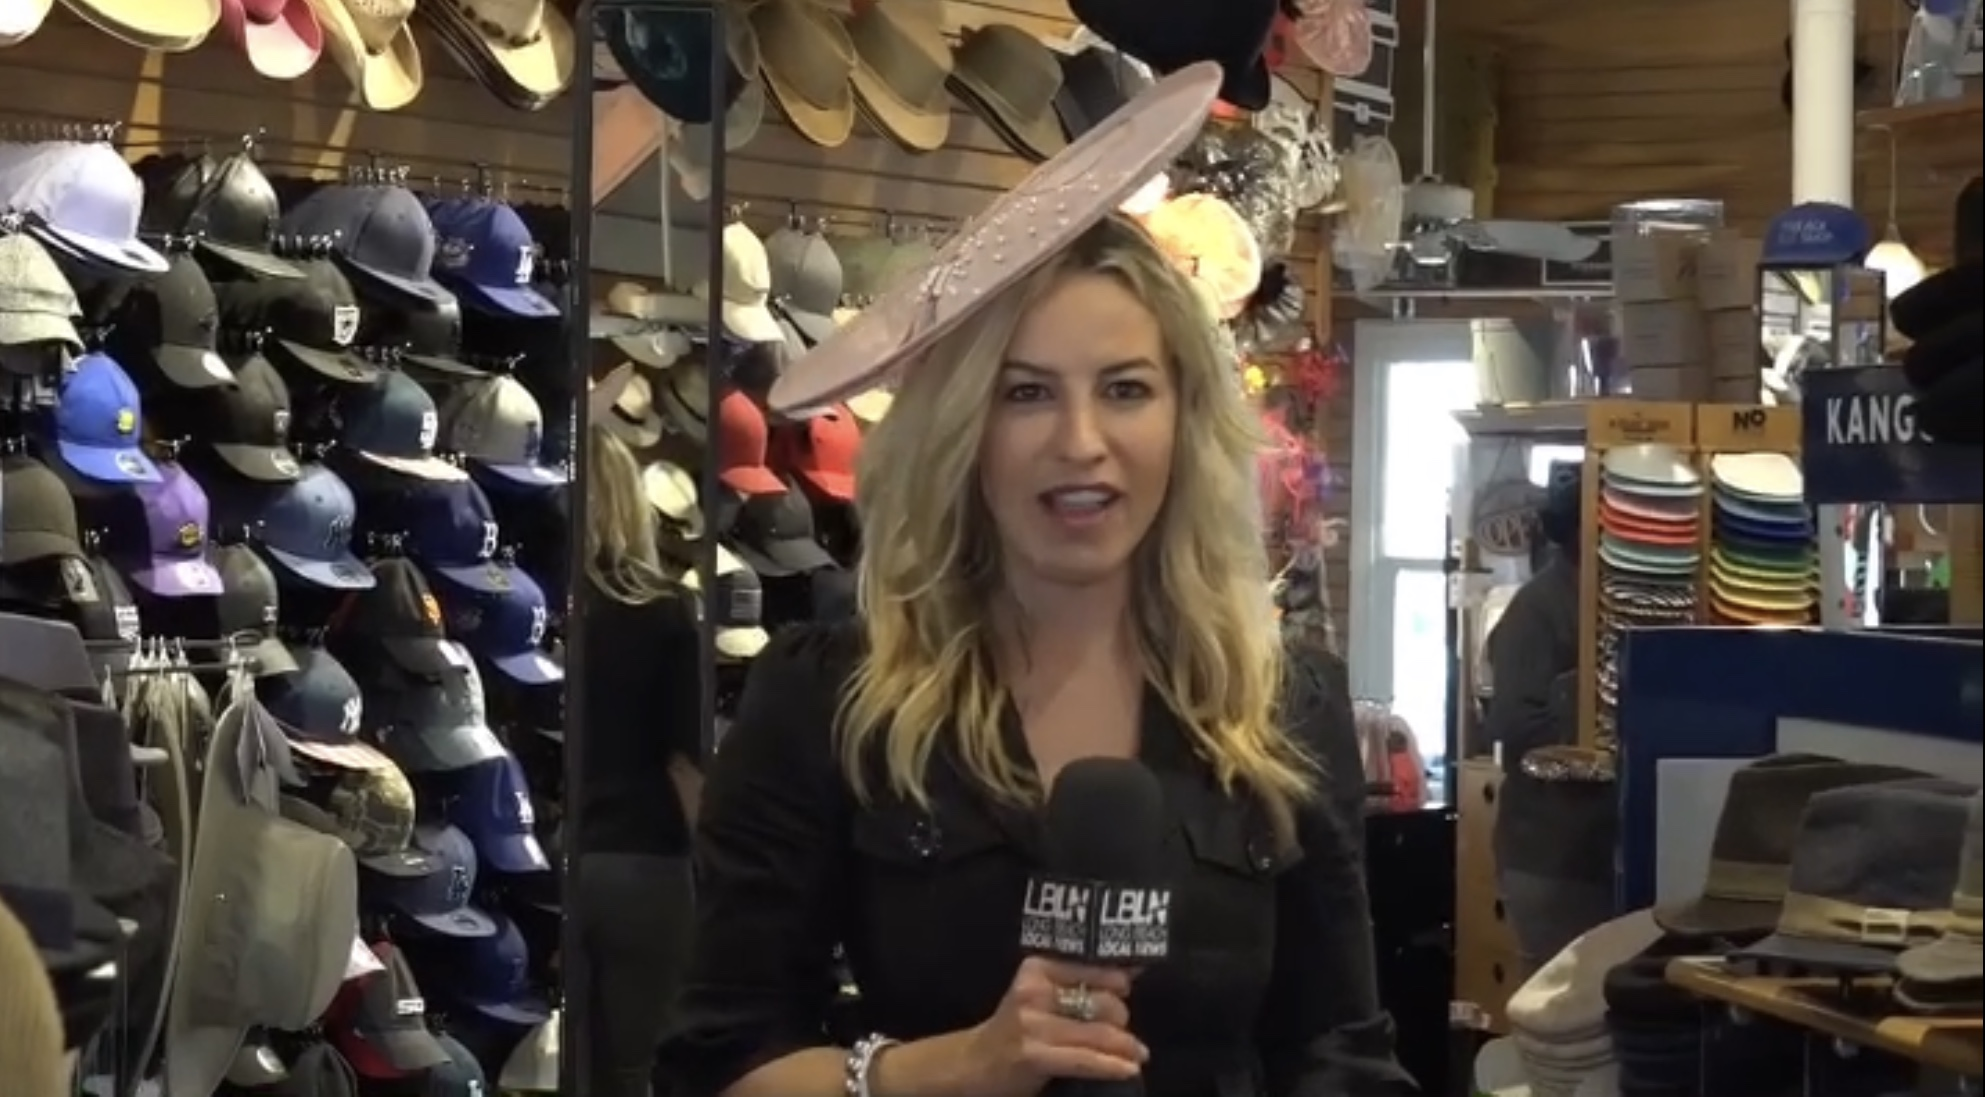 Village Hat Shop - Long Beach for last minute gift ideas to fit anyone - Long  Beach Local News 7897f24ab2a